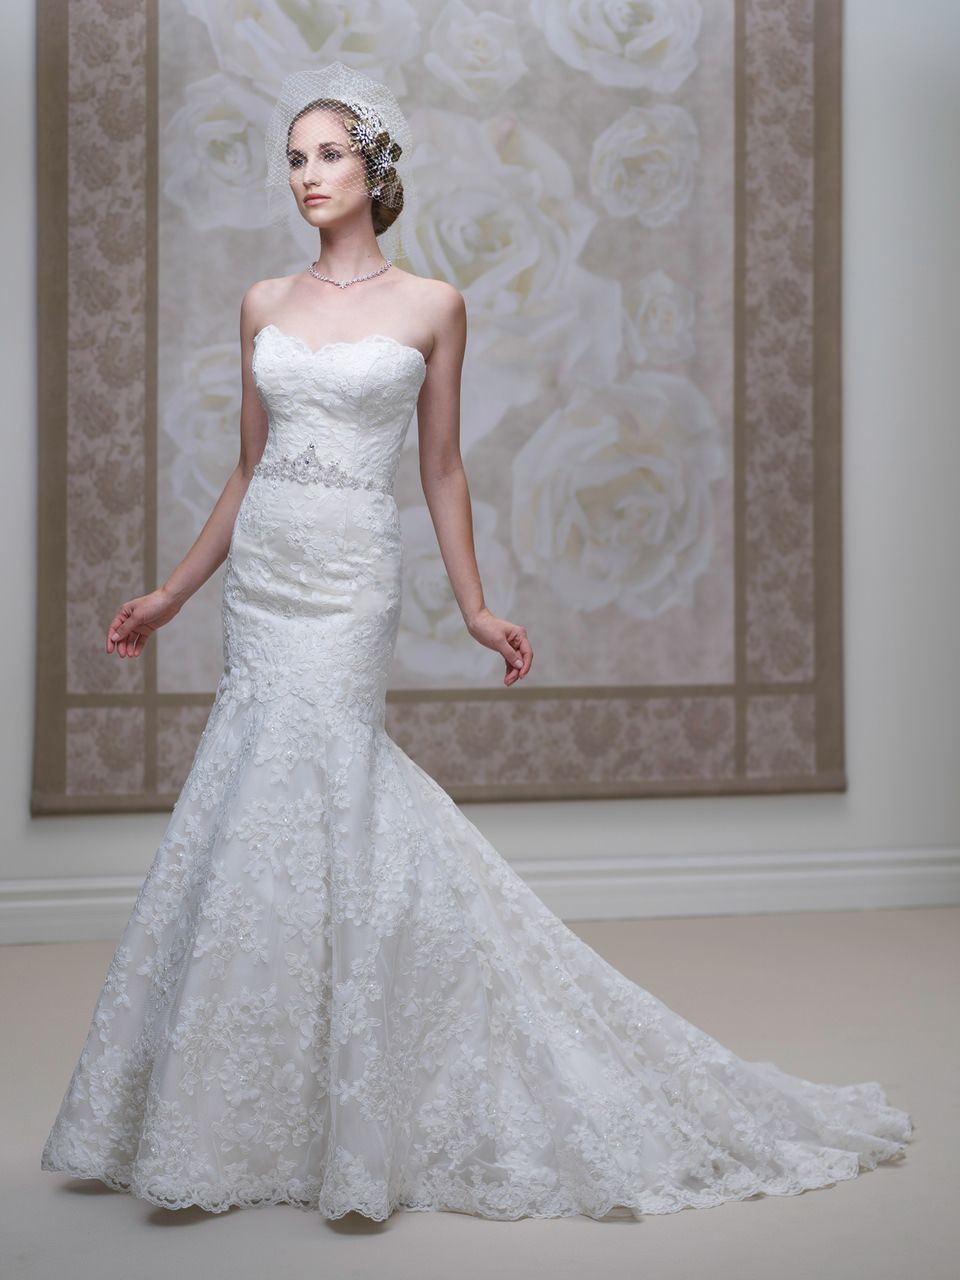 Bridals by lori james clifford collection 0124818 call for bridals by lori james clifford collection 0124818 call for pricing http wedding dresses ombrellifo Images